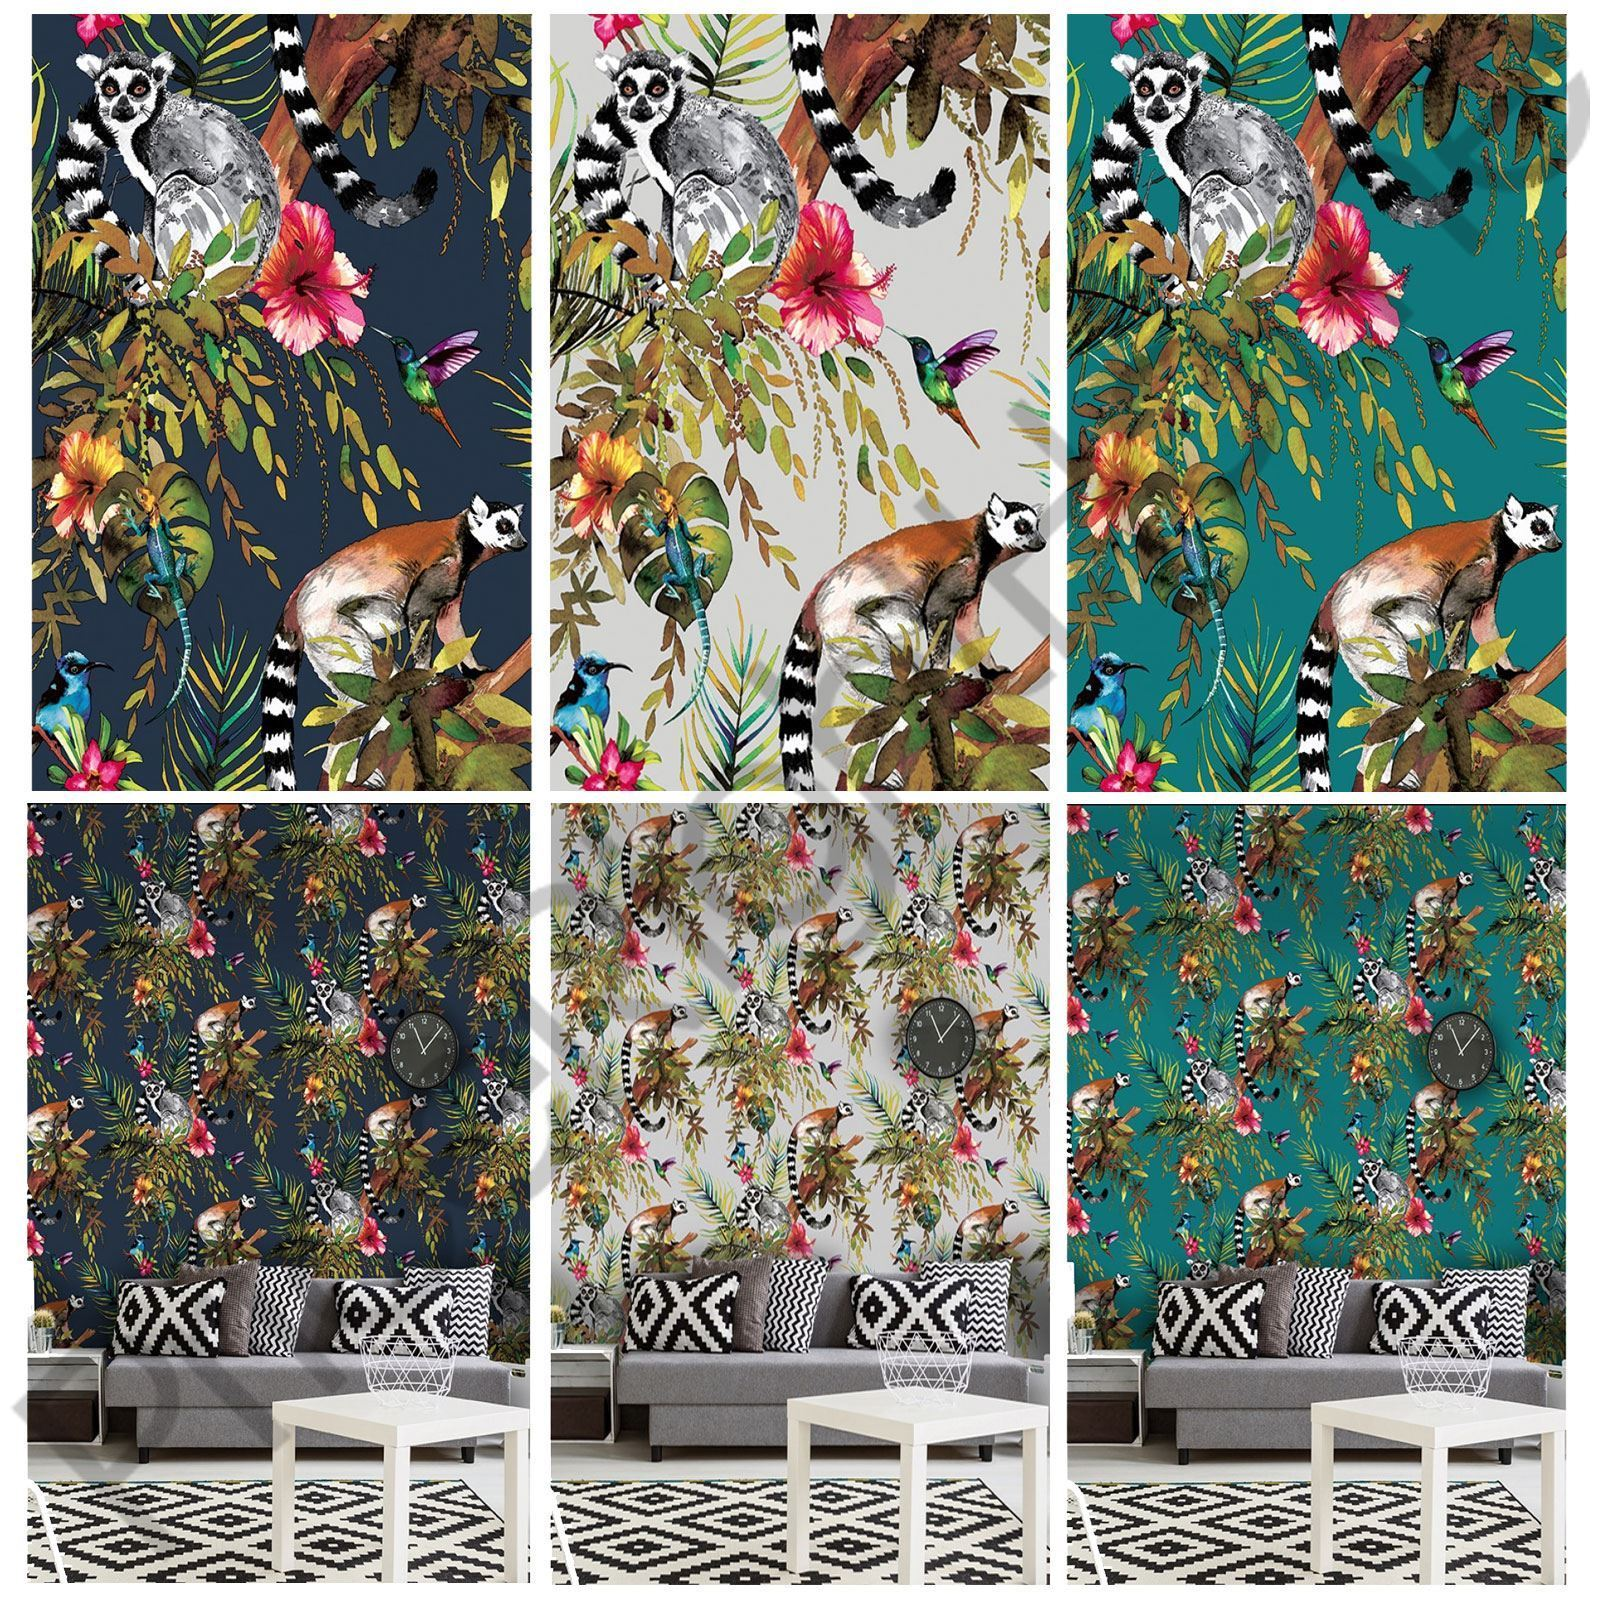 This Unique Lemur Wallpaper Features A Collection Of Detailed Ilrated Style Lemurs With Colourful Hummingbirds And